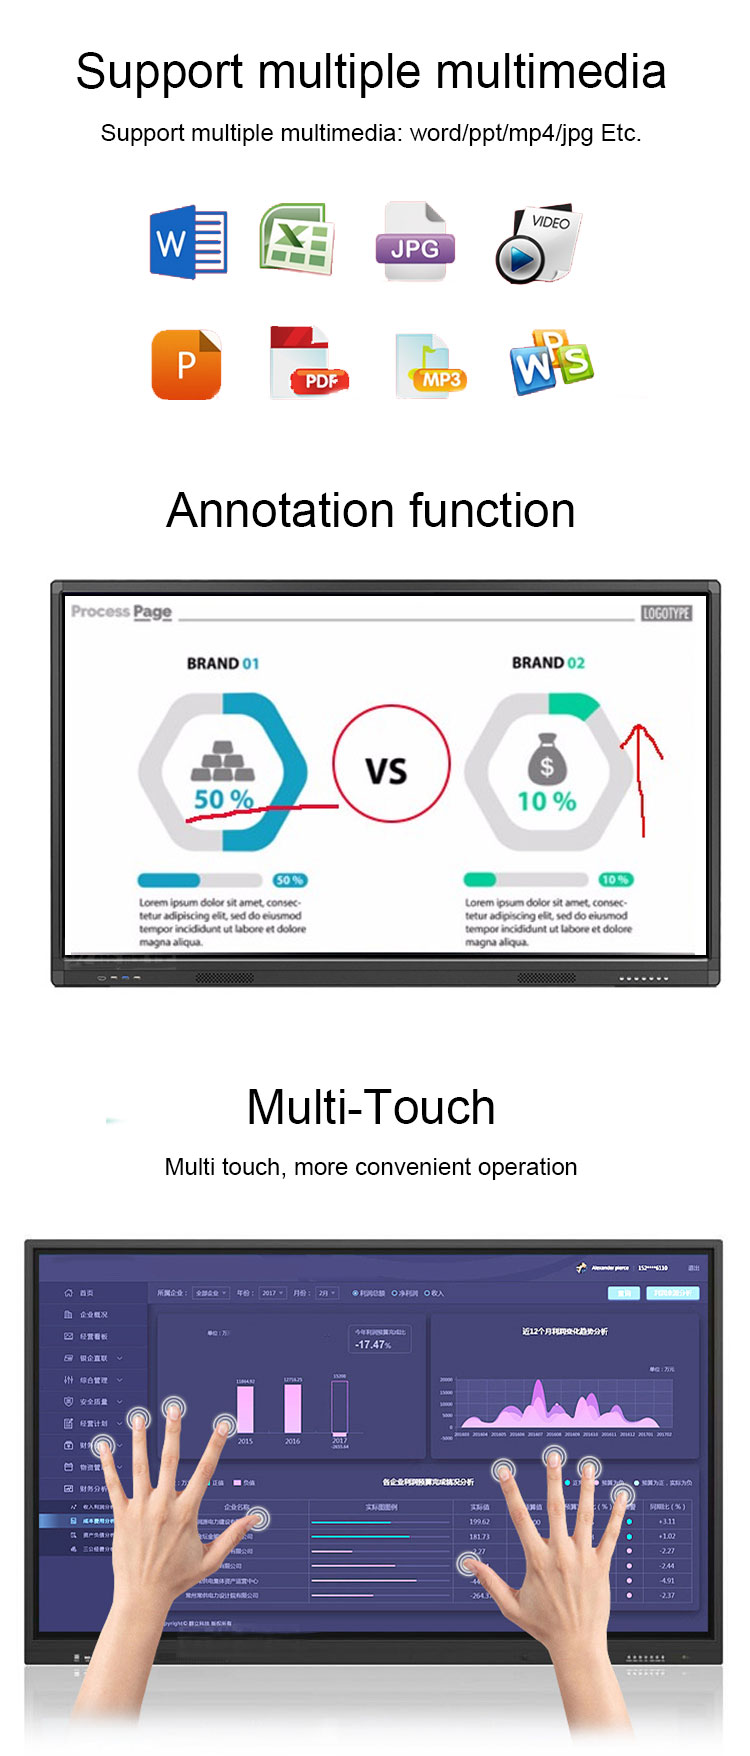 Wall Mount Dual Lcd Touch Interactive Touch All-In-One Interactive Whiteboard Eductionและจัดการประชุมอุปกรณ์